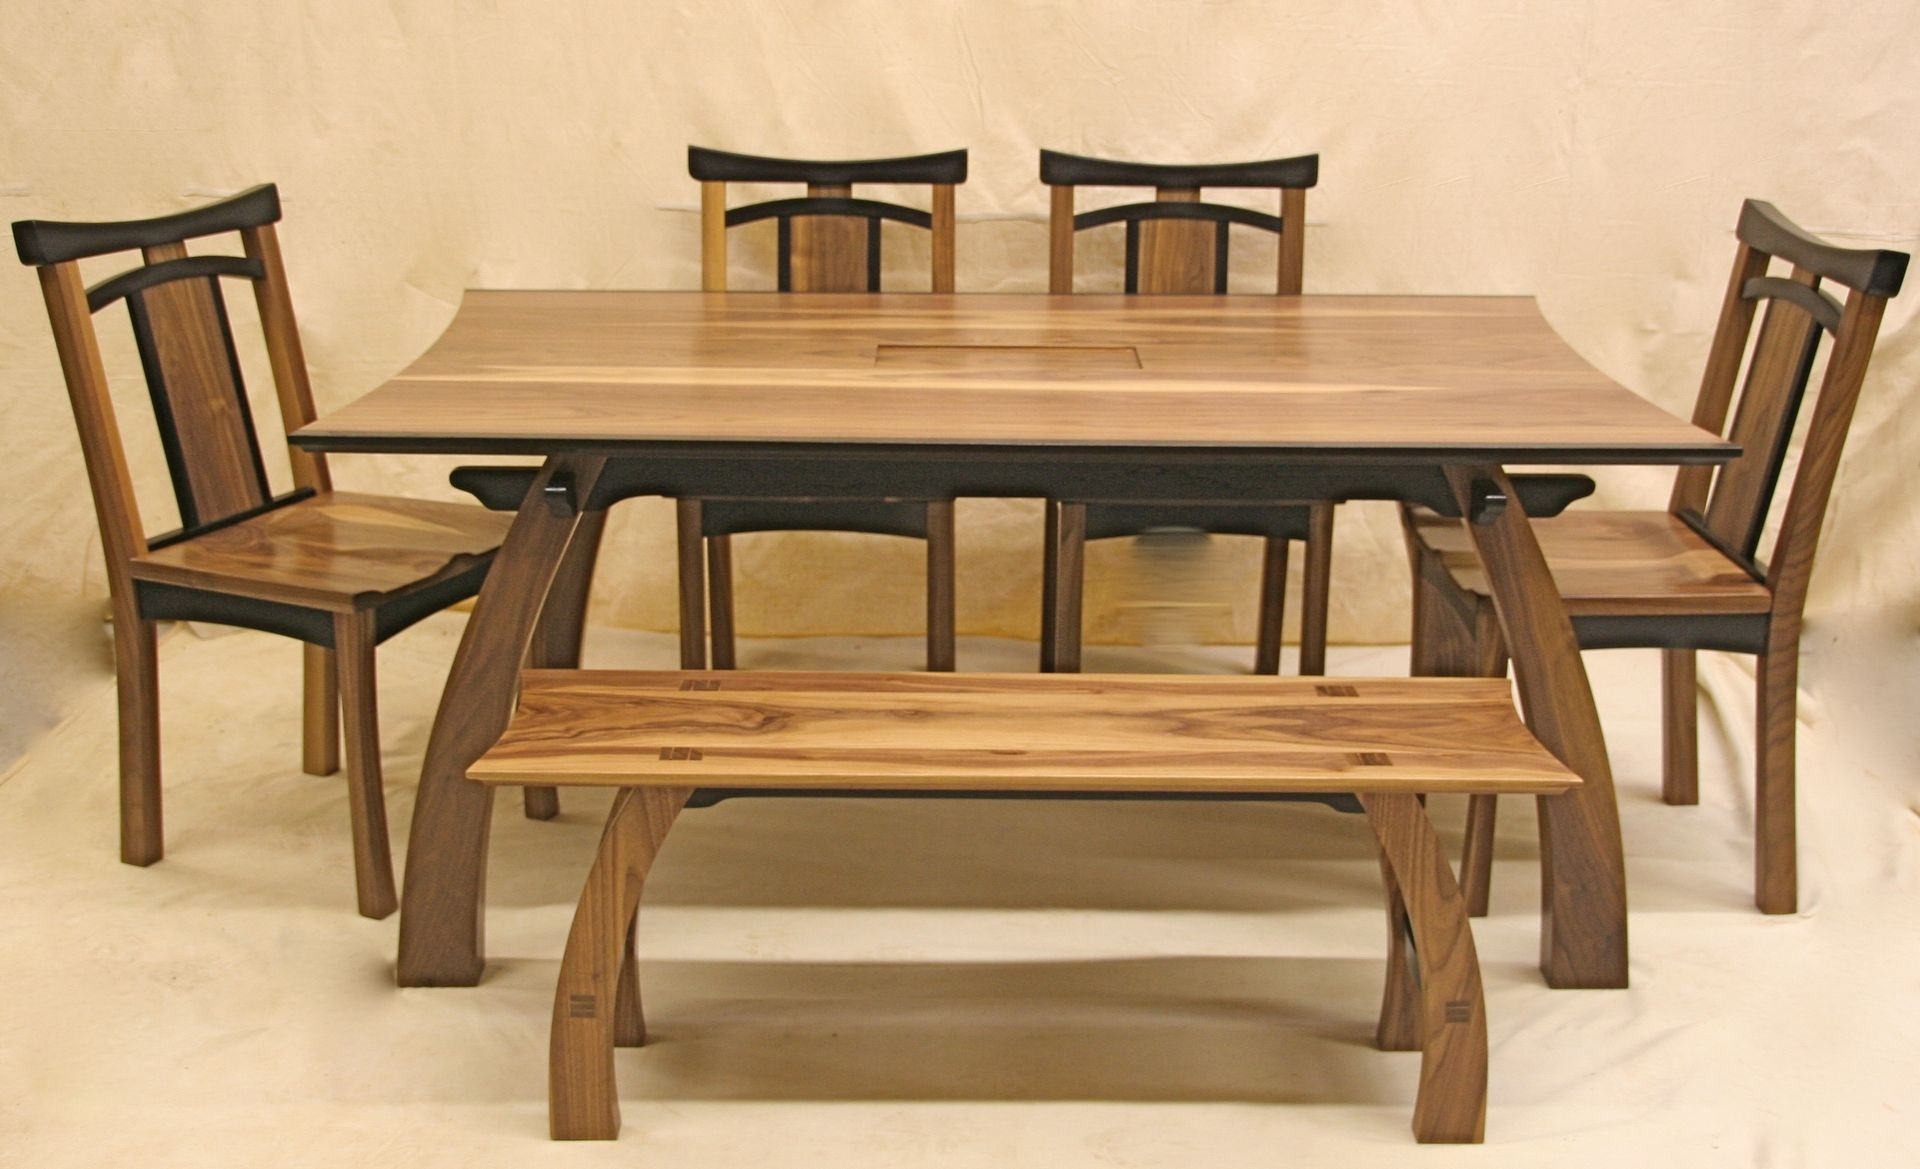 Classy Rectangular Wooden Japanese Dining Table With Dining Chairs Added  Single Benches As Decorate In Asian Dining Room Decors Views Part 35